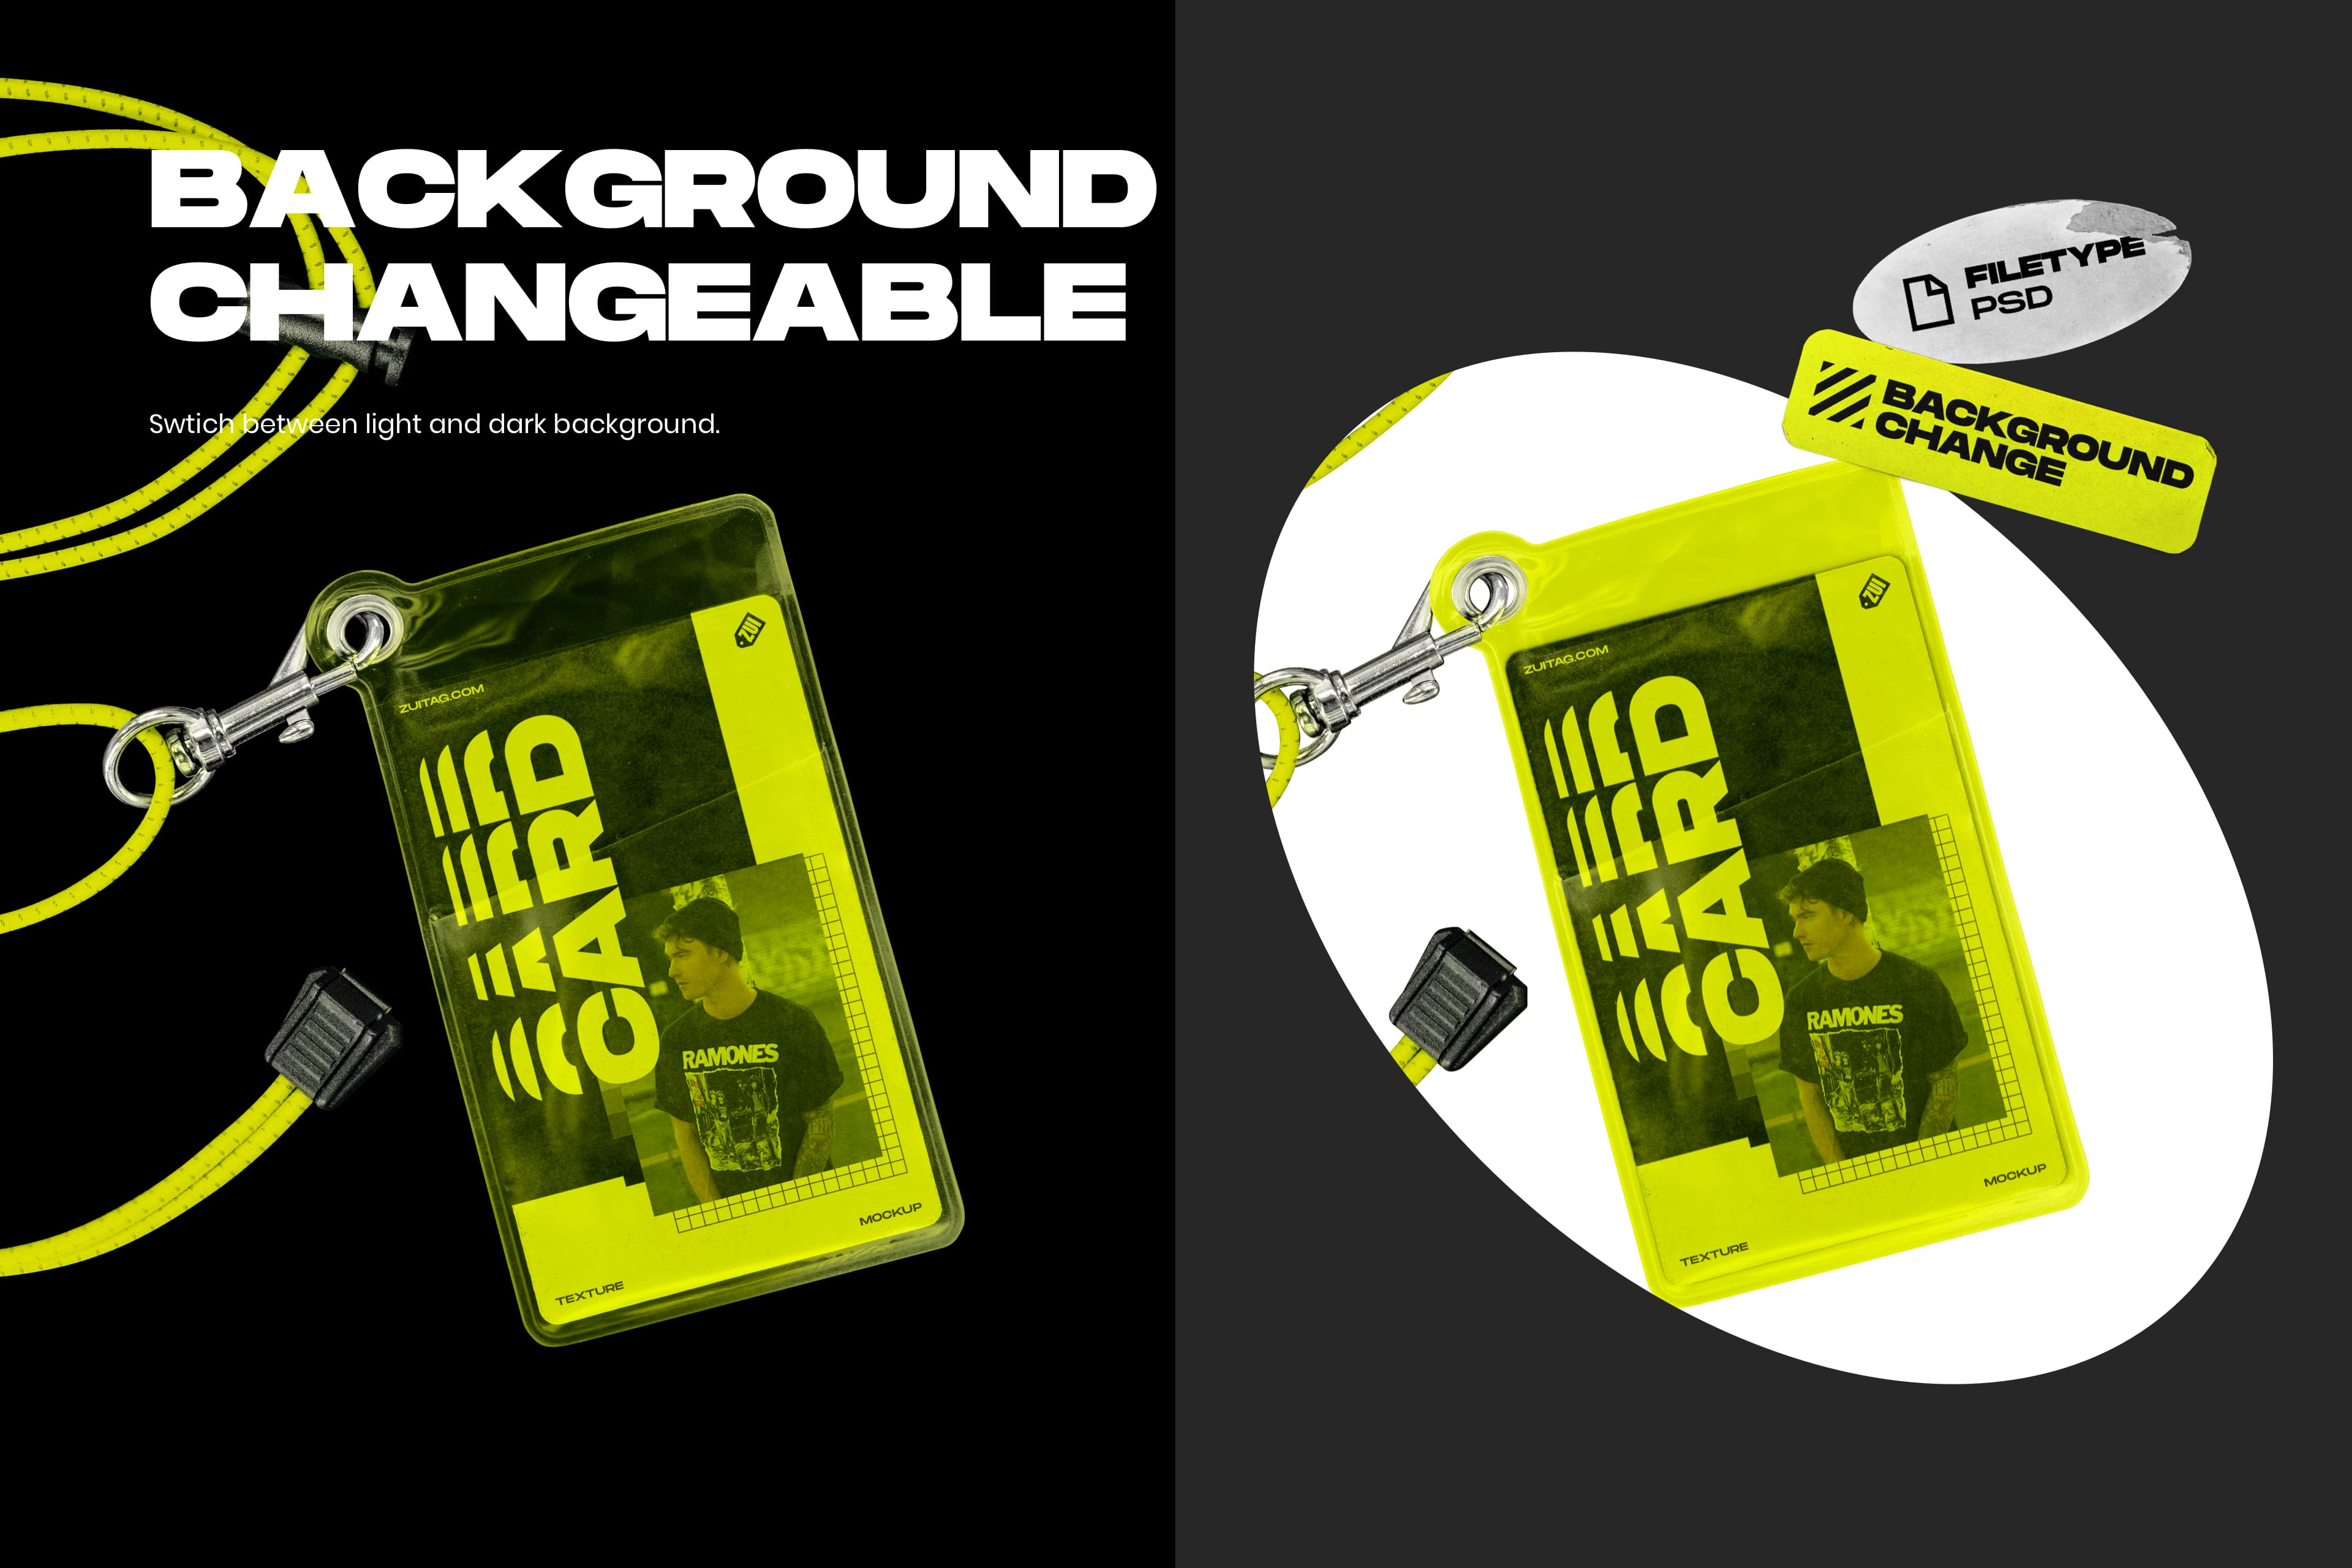 Plastic ID Card and Lanyard Mockup - Background Changeable